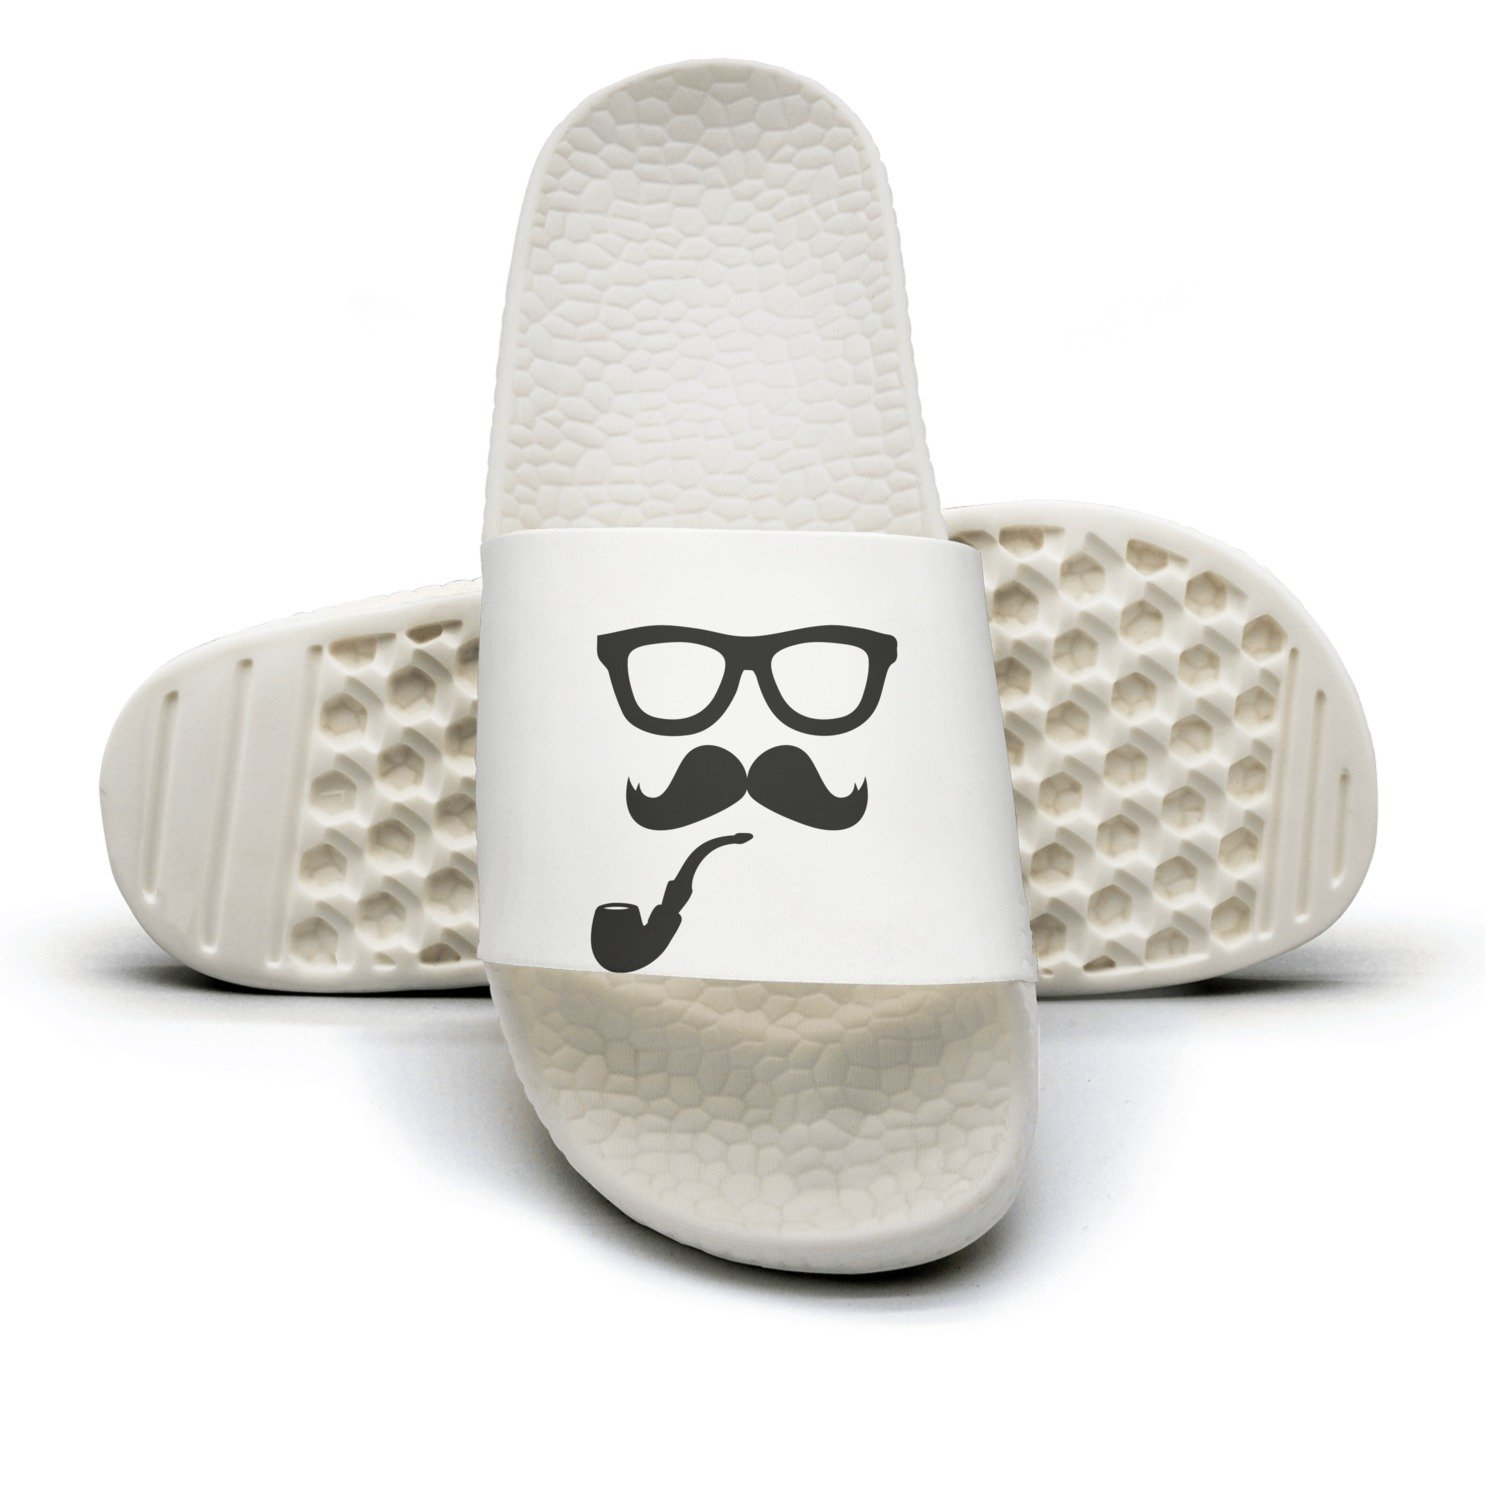 Moustache Glasses Pipe Women's Fashion Slippers Sandals Casual